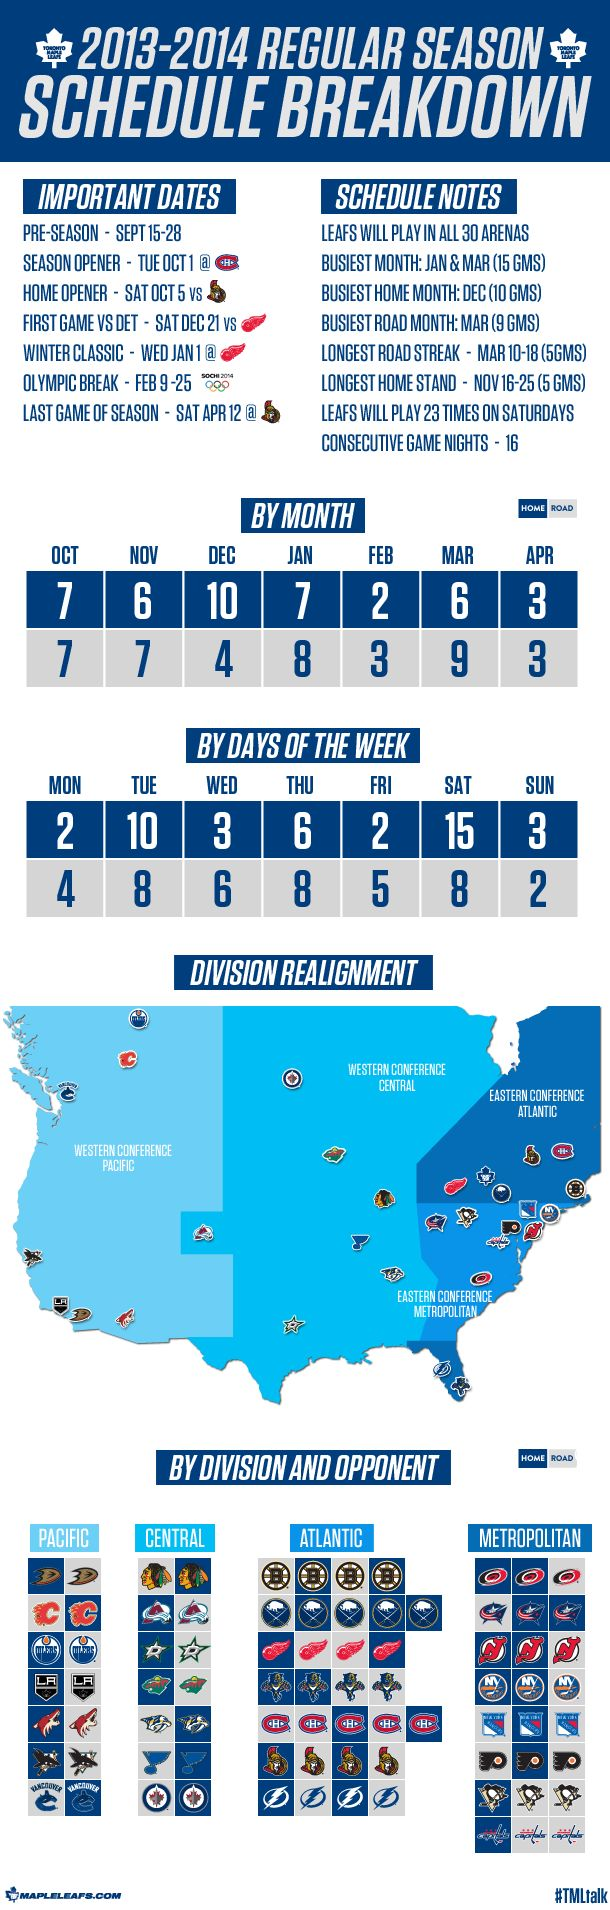 Breaking Down The 2013-14 Schedule: Toronto Maple Leafs